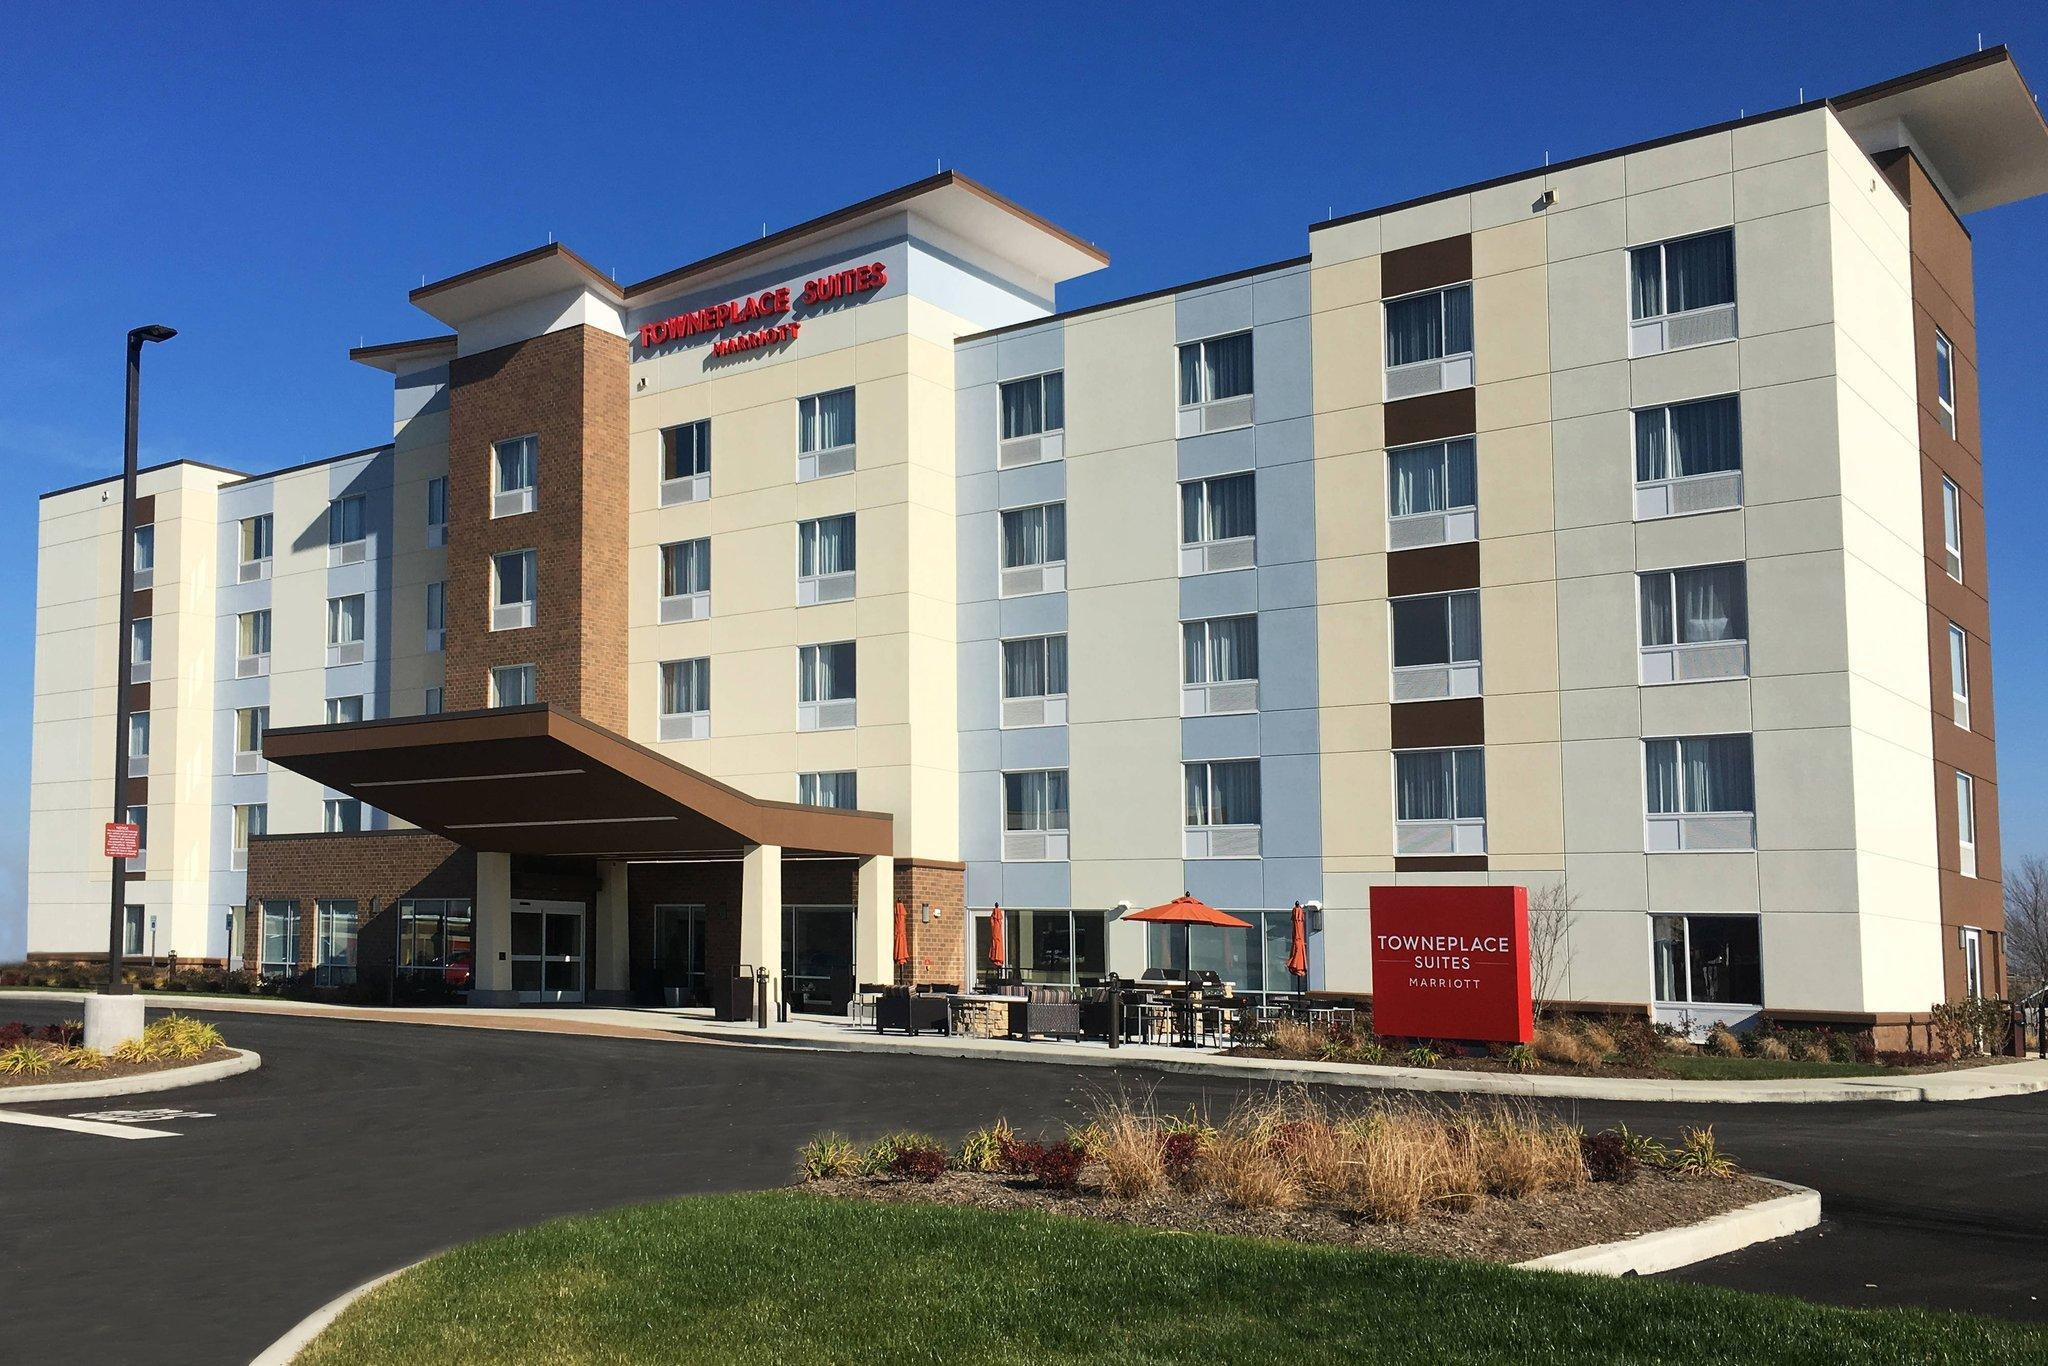 TownePlace Suites Grove City Mercer Outlets